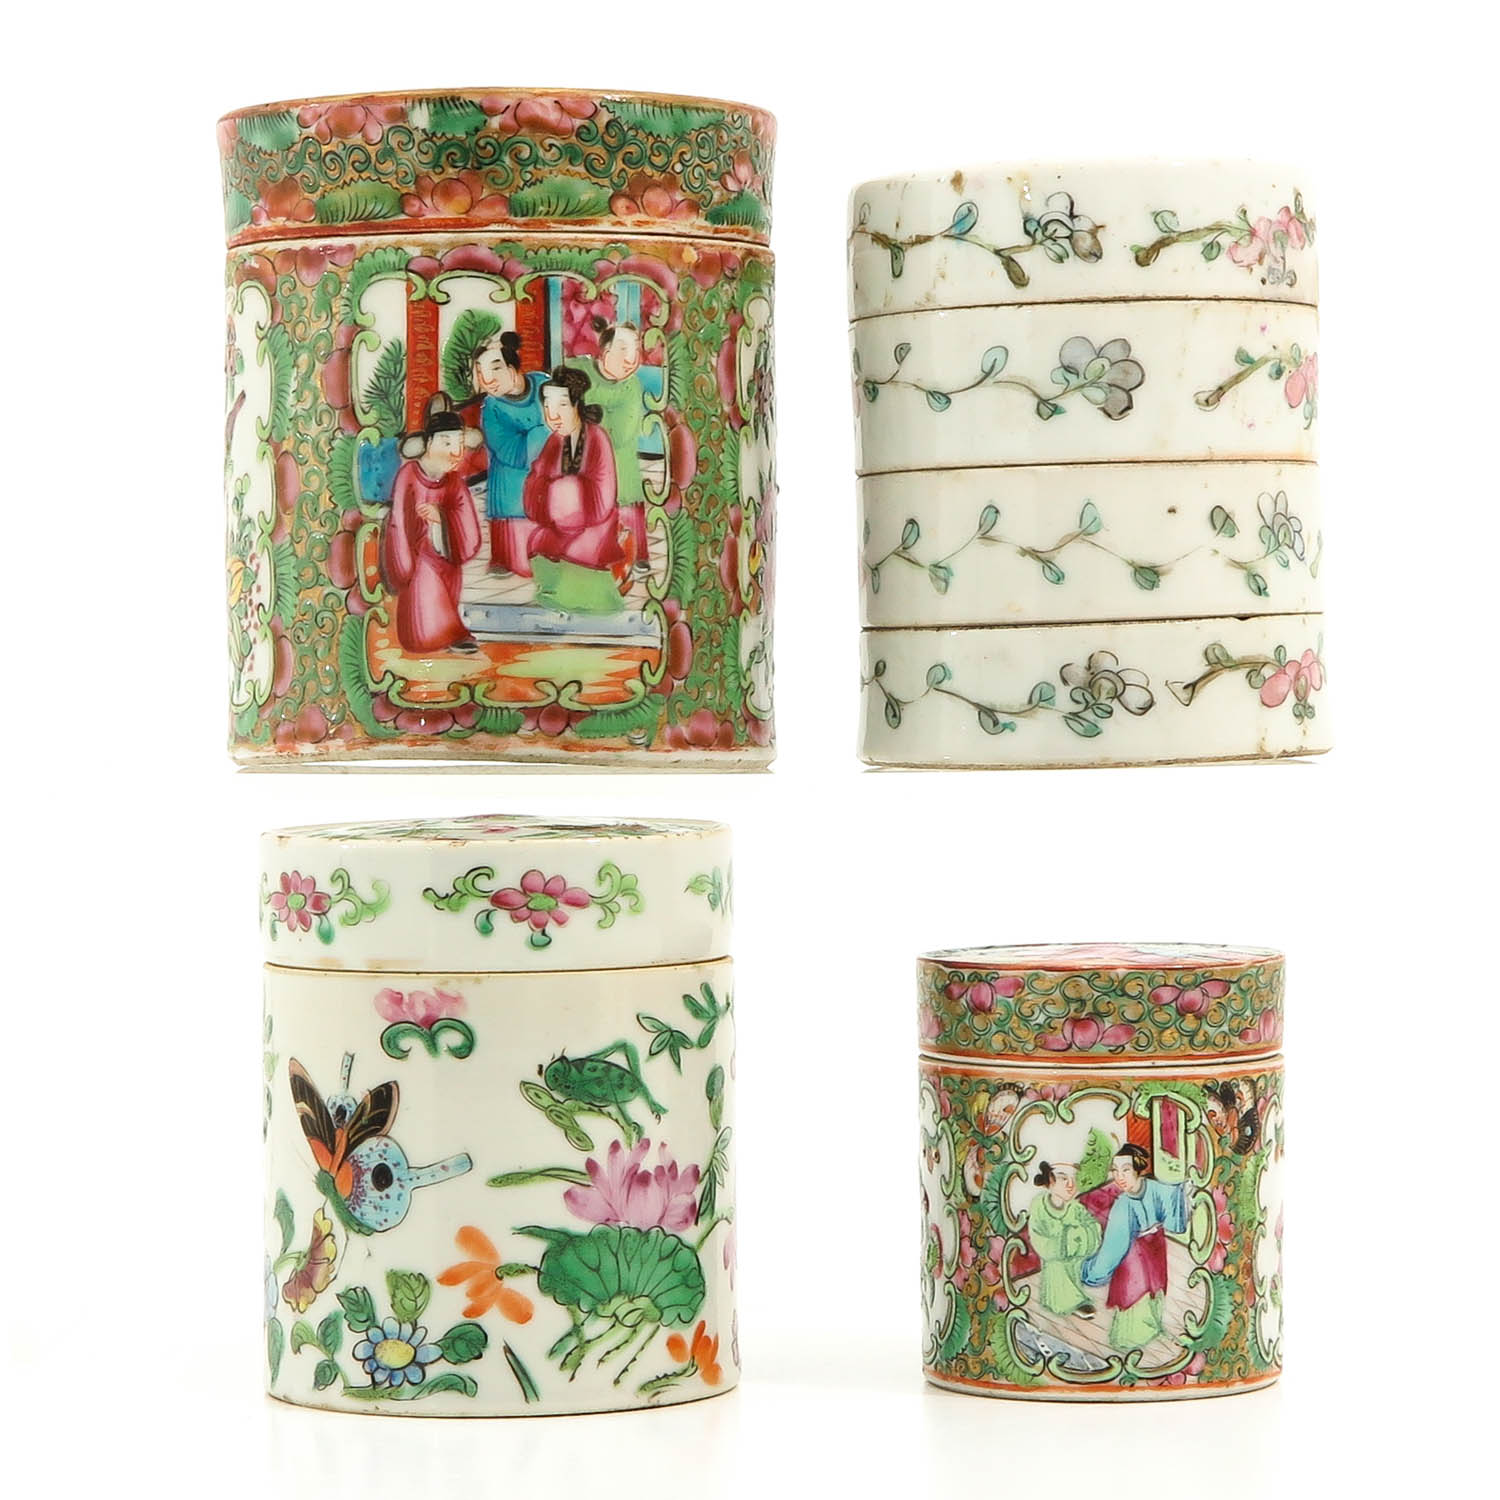 A Collection of 4 Chinese Boxes - Image 3 of 10